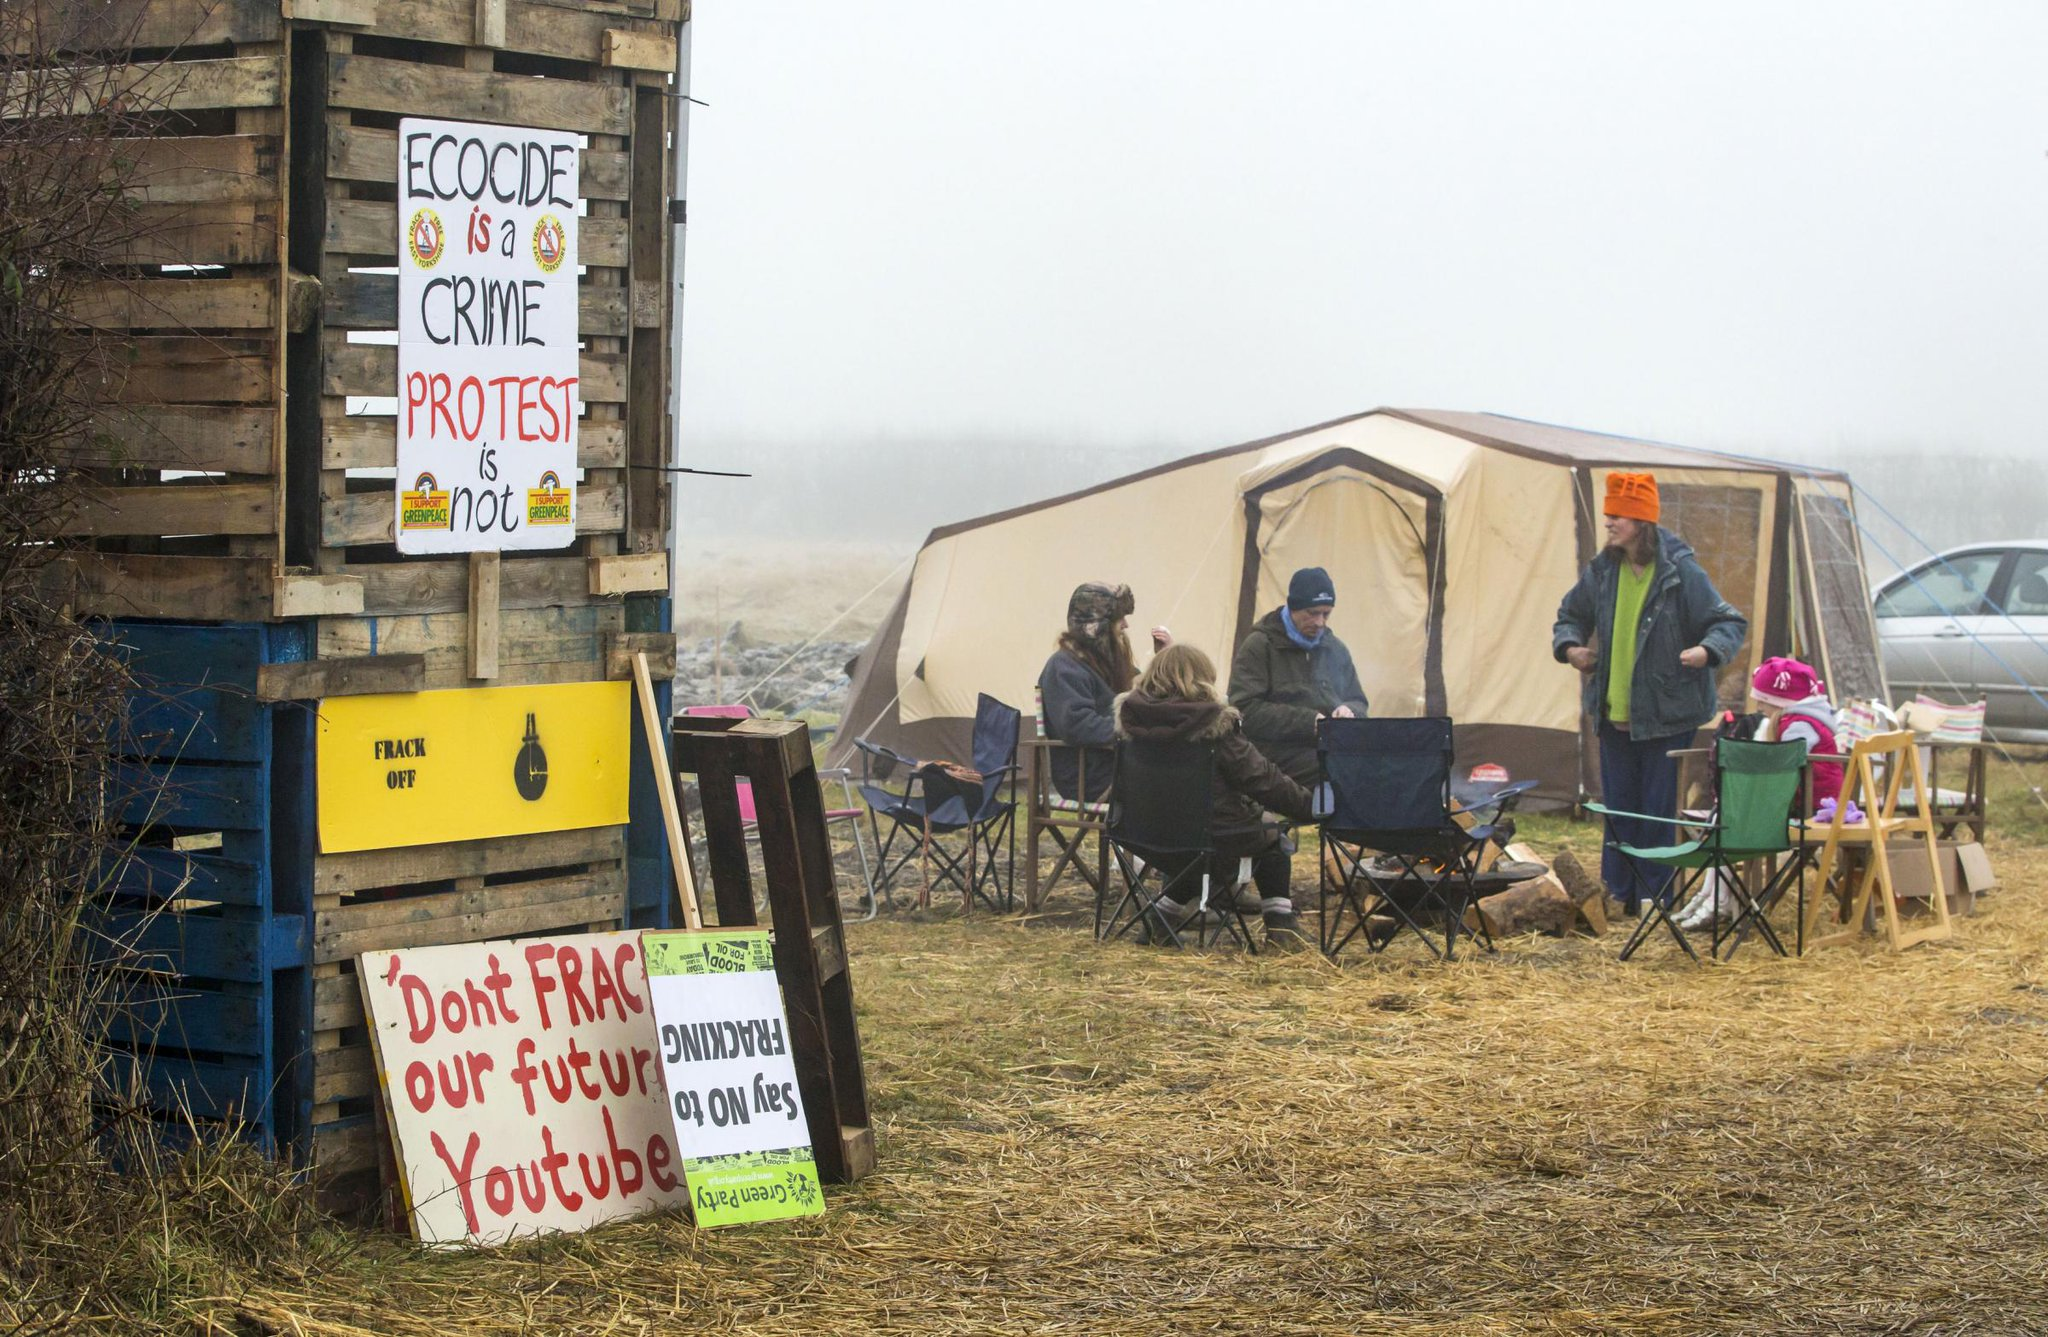 Camp becomes national frack protest centre https://t.co/3VkQ0QaMaS https://t.co/yeAF1gGWYv